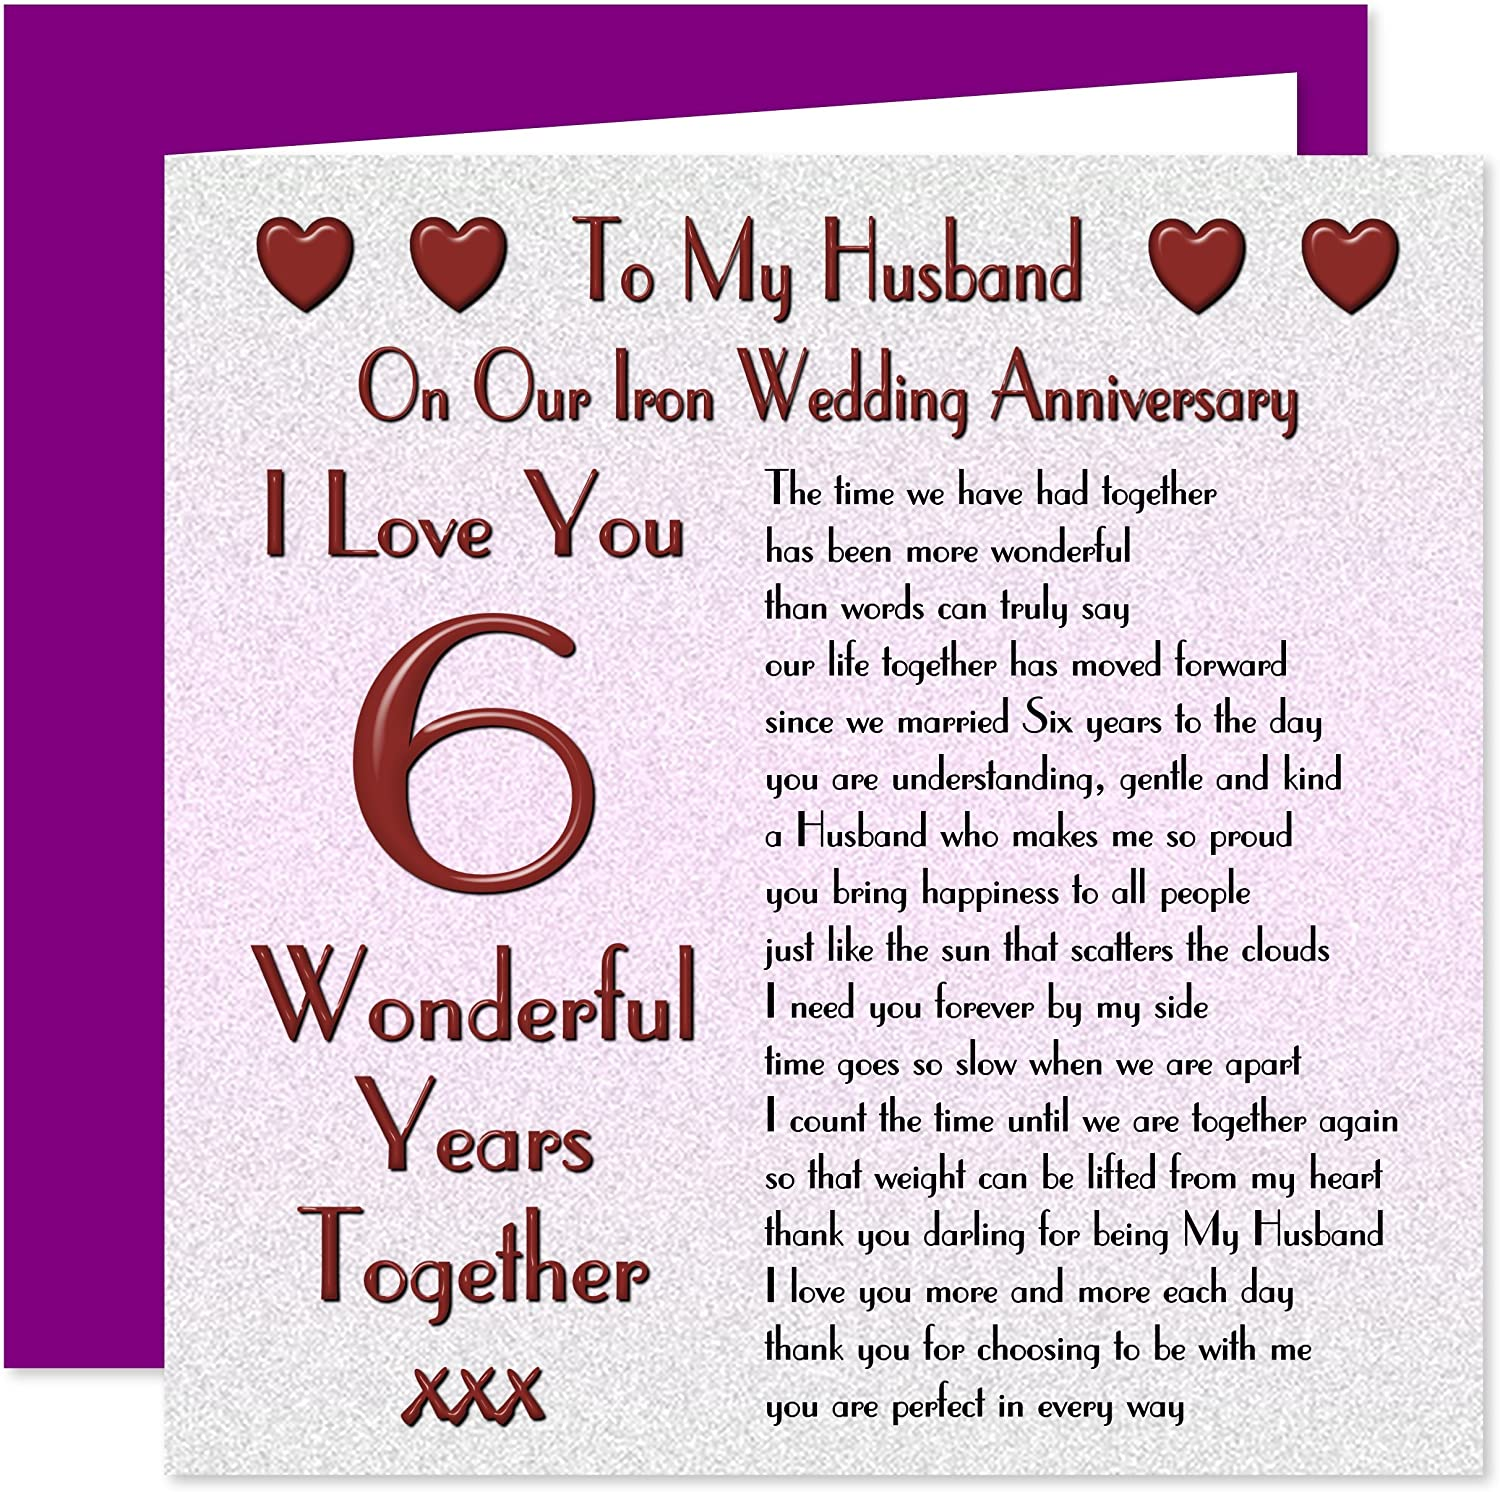 My Husband 9th Wedding Anniversary Card - On Our Iron Anniversary - 9 Years  - Sentimental Verse I Love You